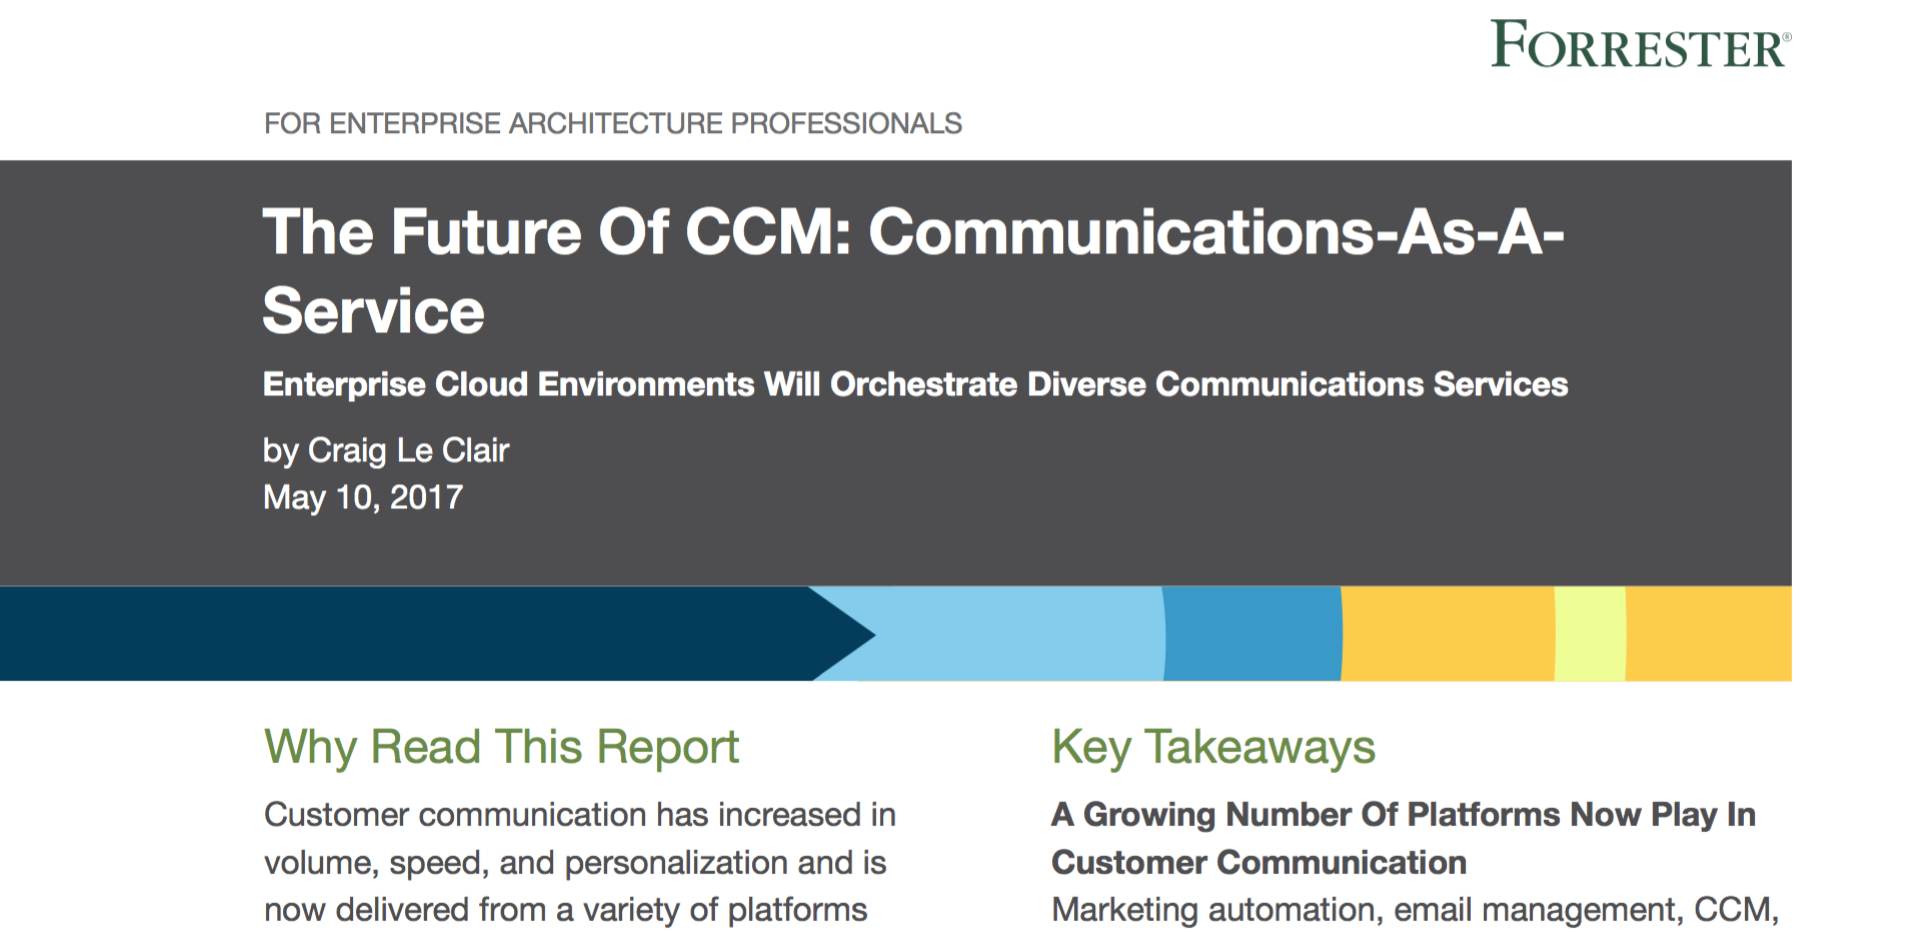 Forrester Future of CCM report snippet